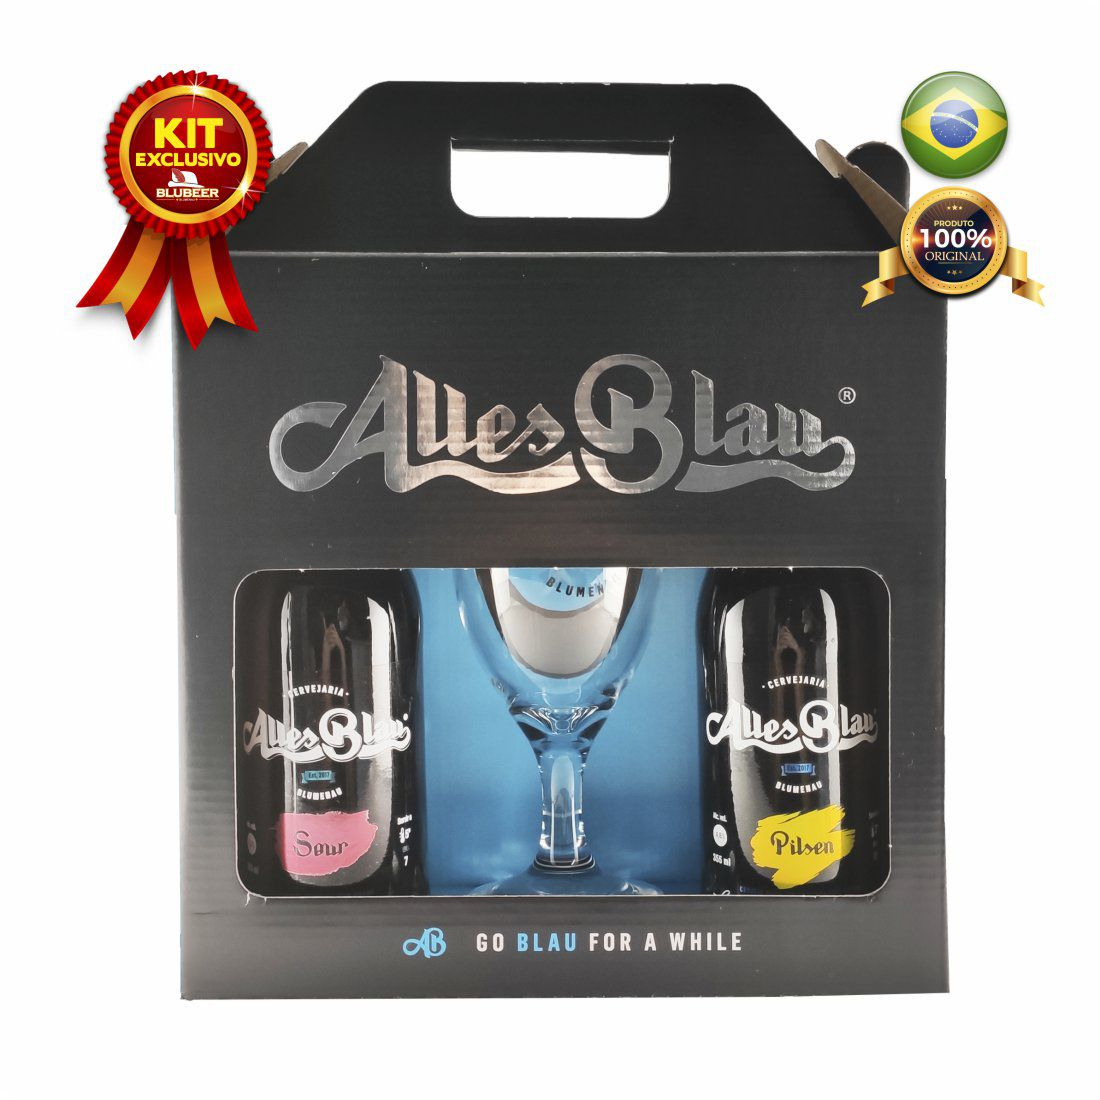 KIT ALLES BLAU SOUR + PILSEN + COPO 300ML